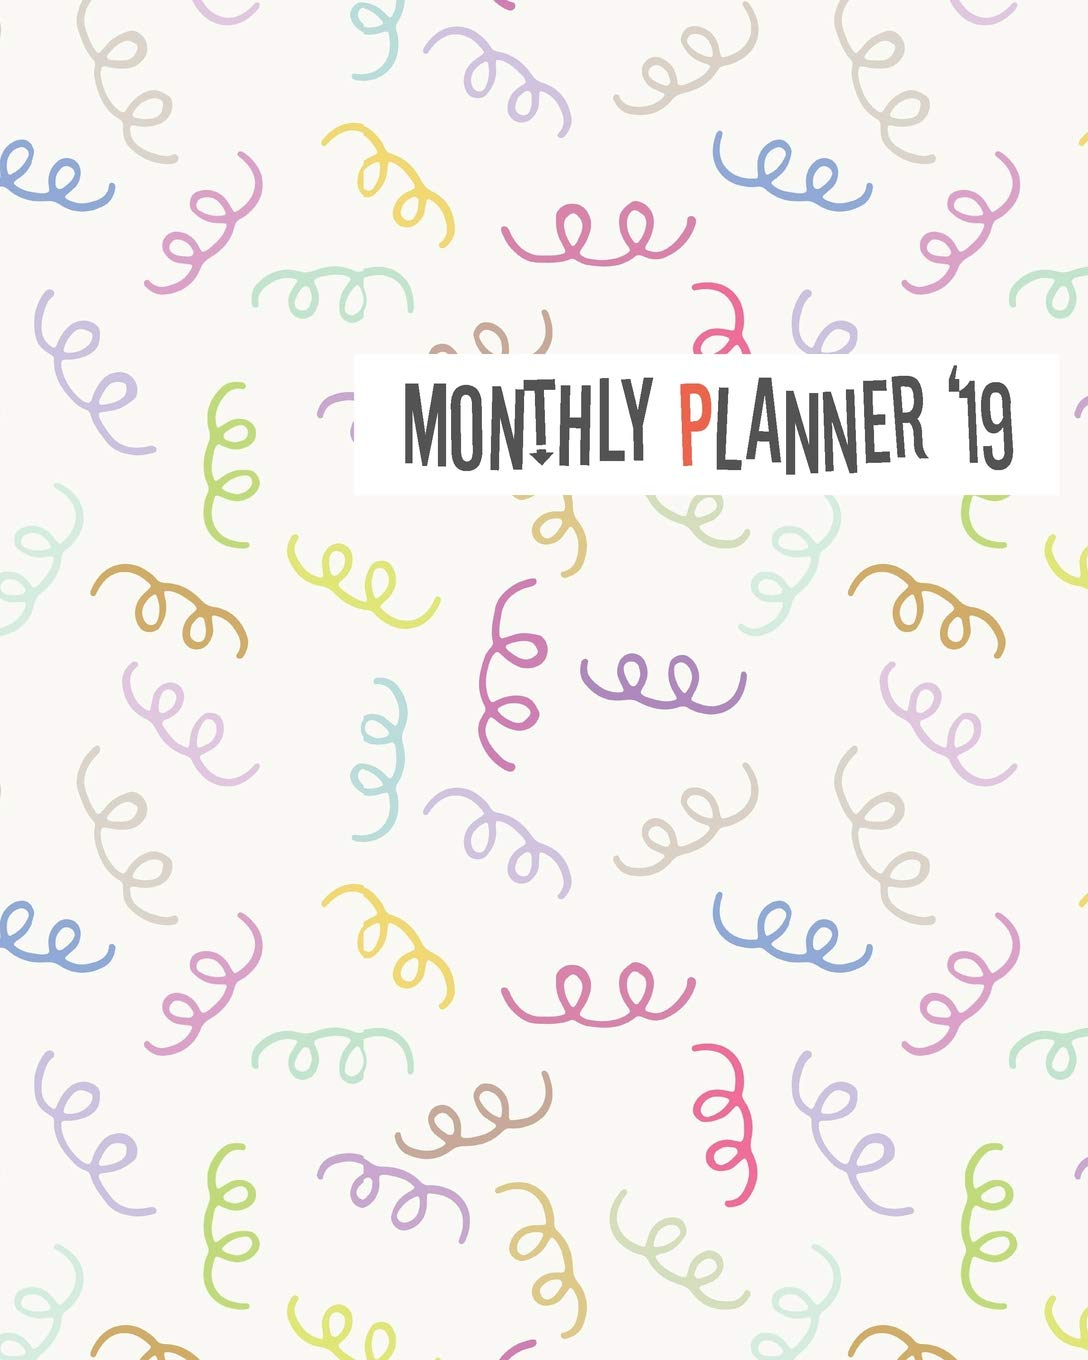 Monthly Planner19: Yearly Monthly Weekly 12 months 365 days ...